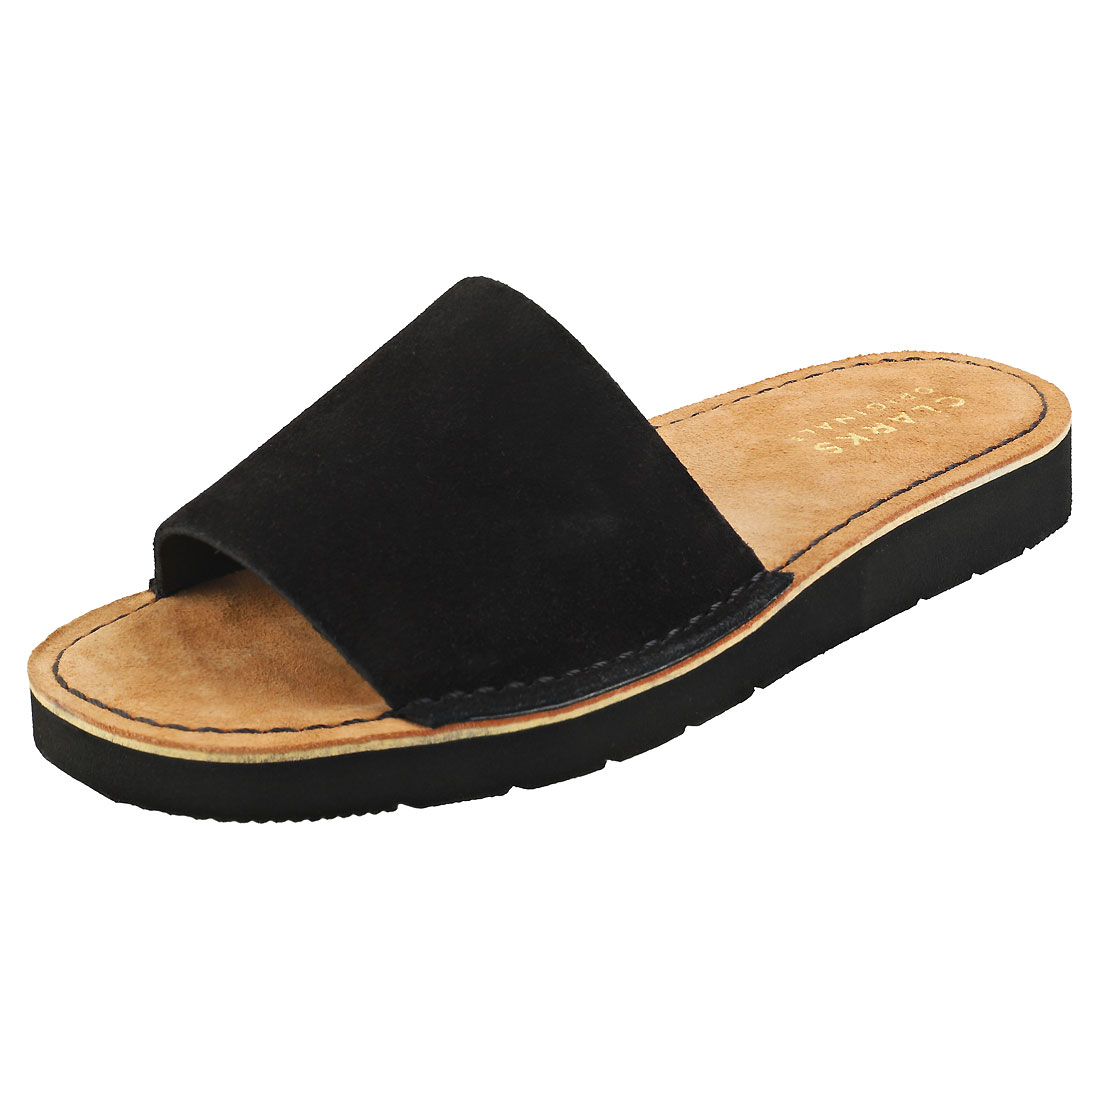 Clarks Originals Lunan Womens Black Suede Slide Sandals 8 UK